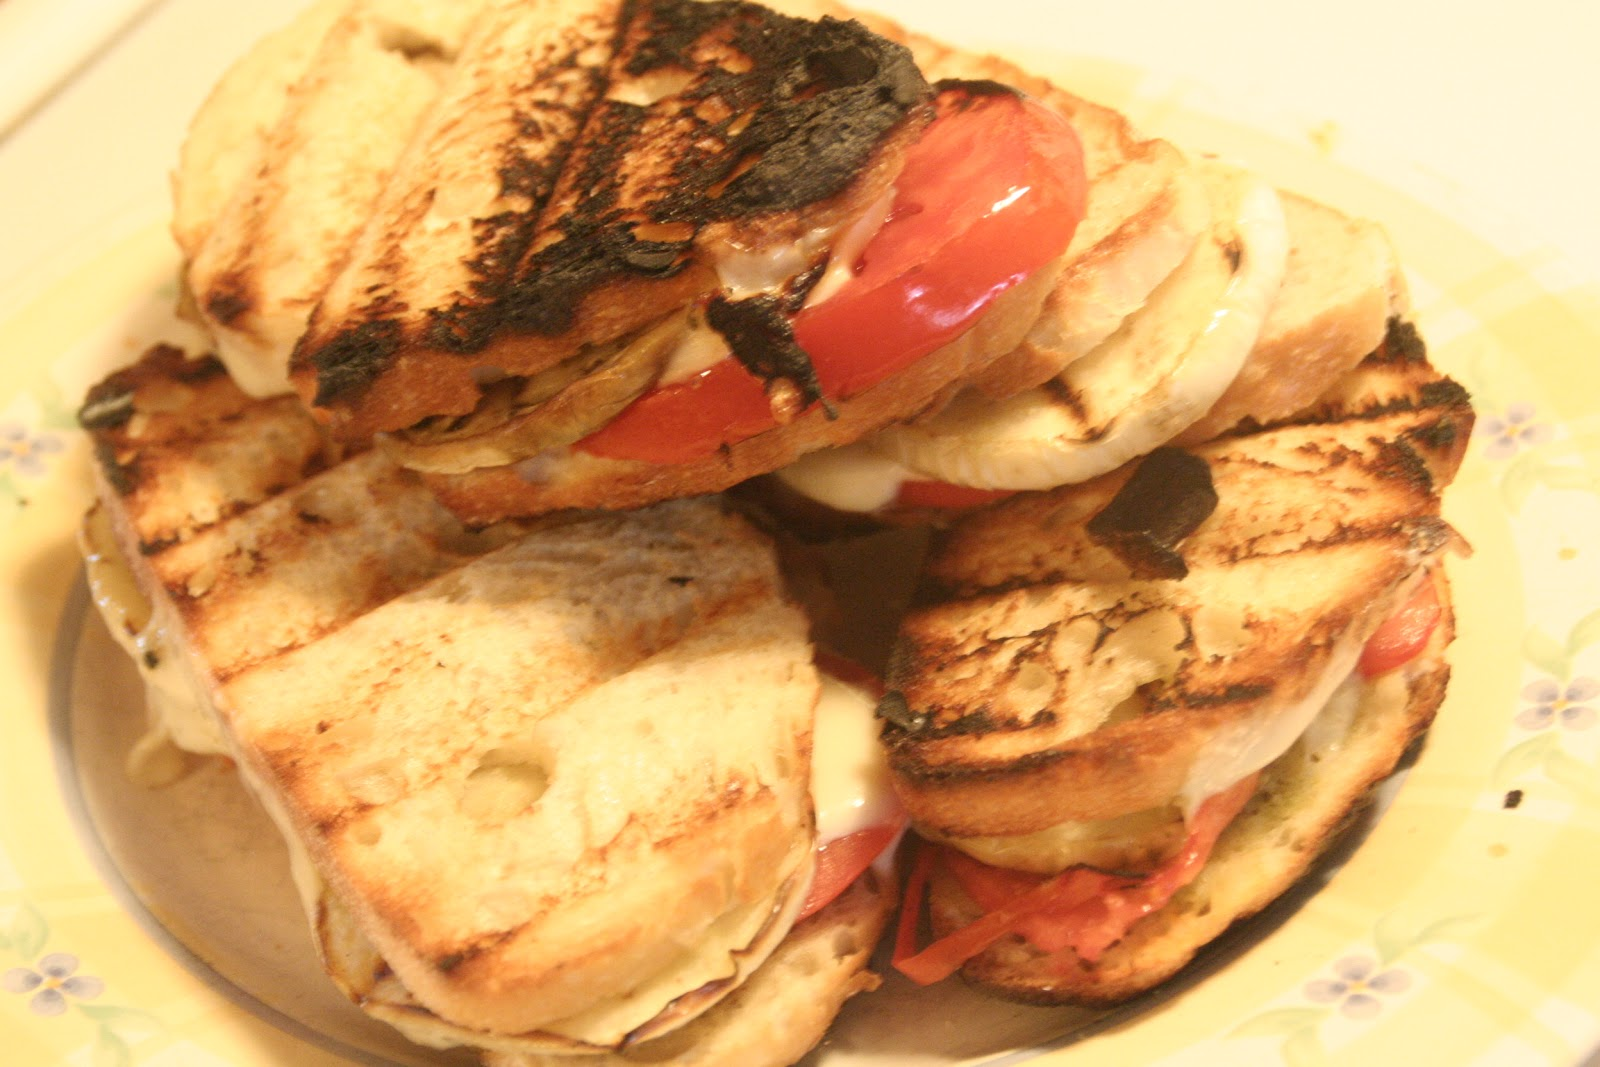 Tales from the Mad Men Kitchen: Eggplant Panini with Pesto